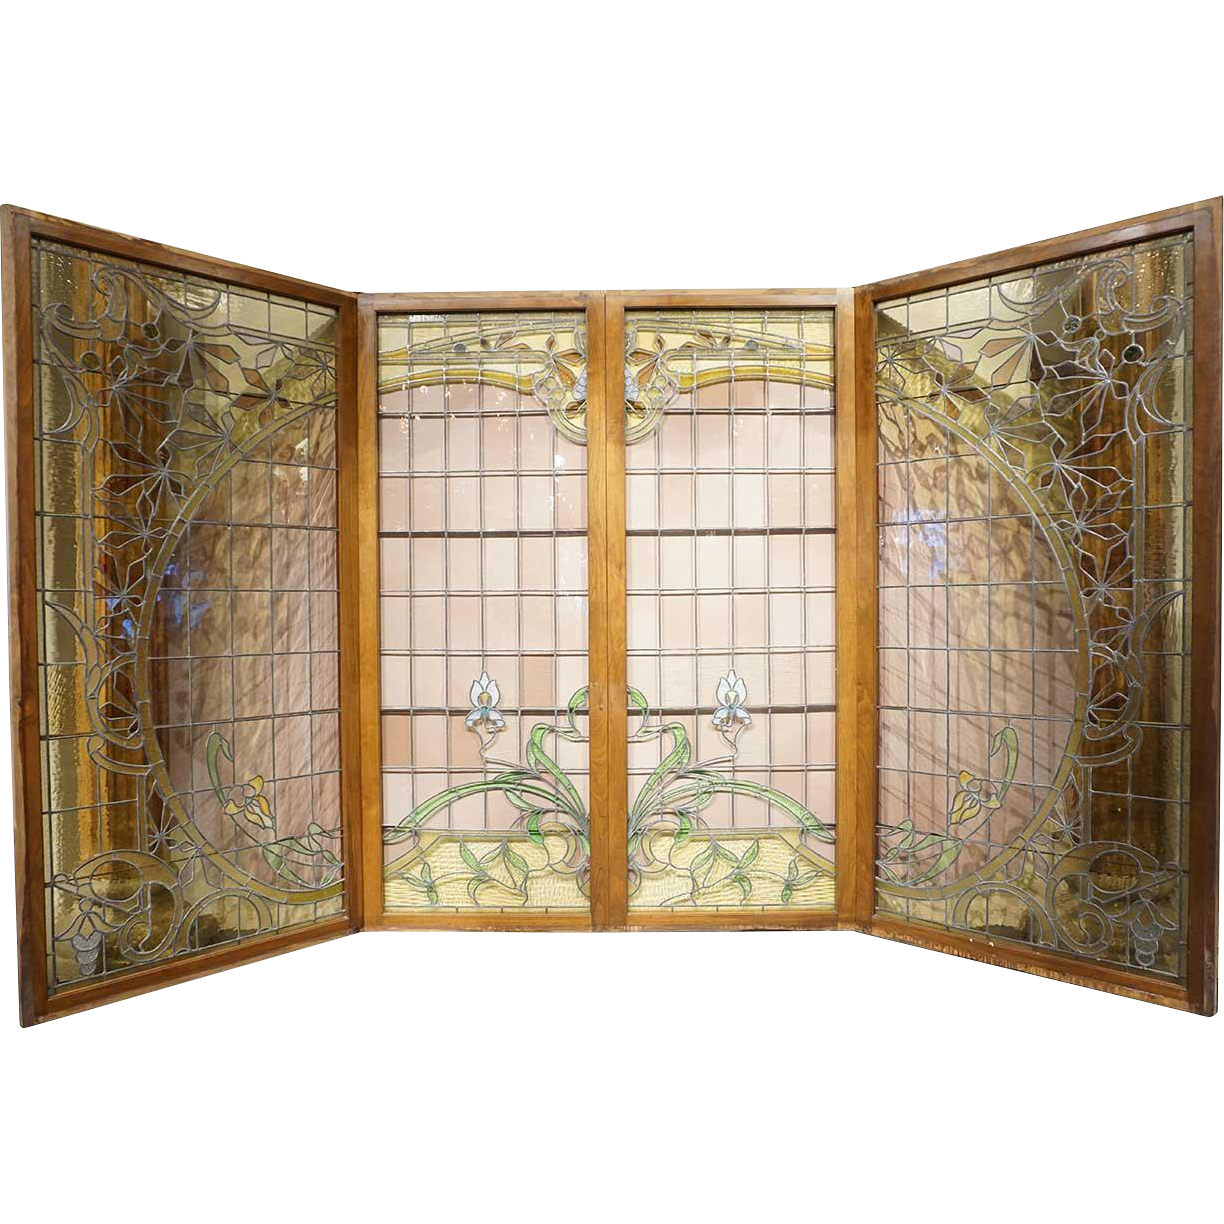 Set of Four French Art Nouveau Stained and Leaded Glass Windows